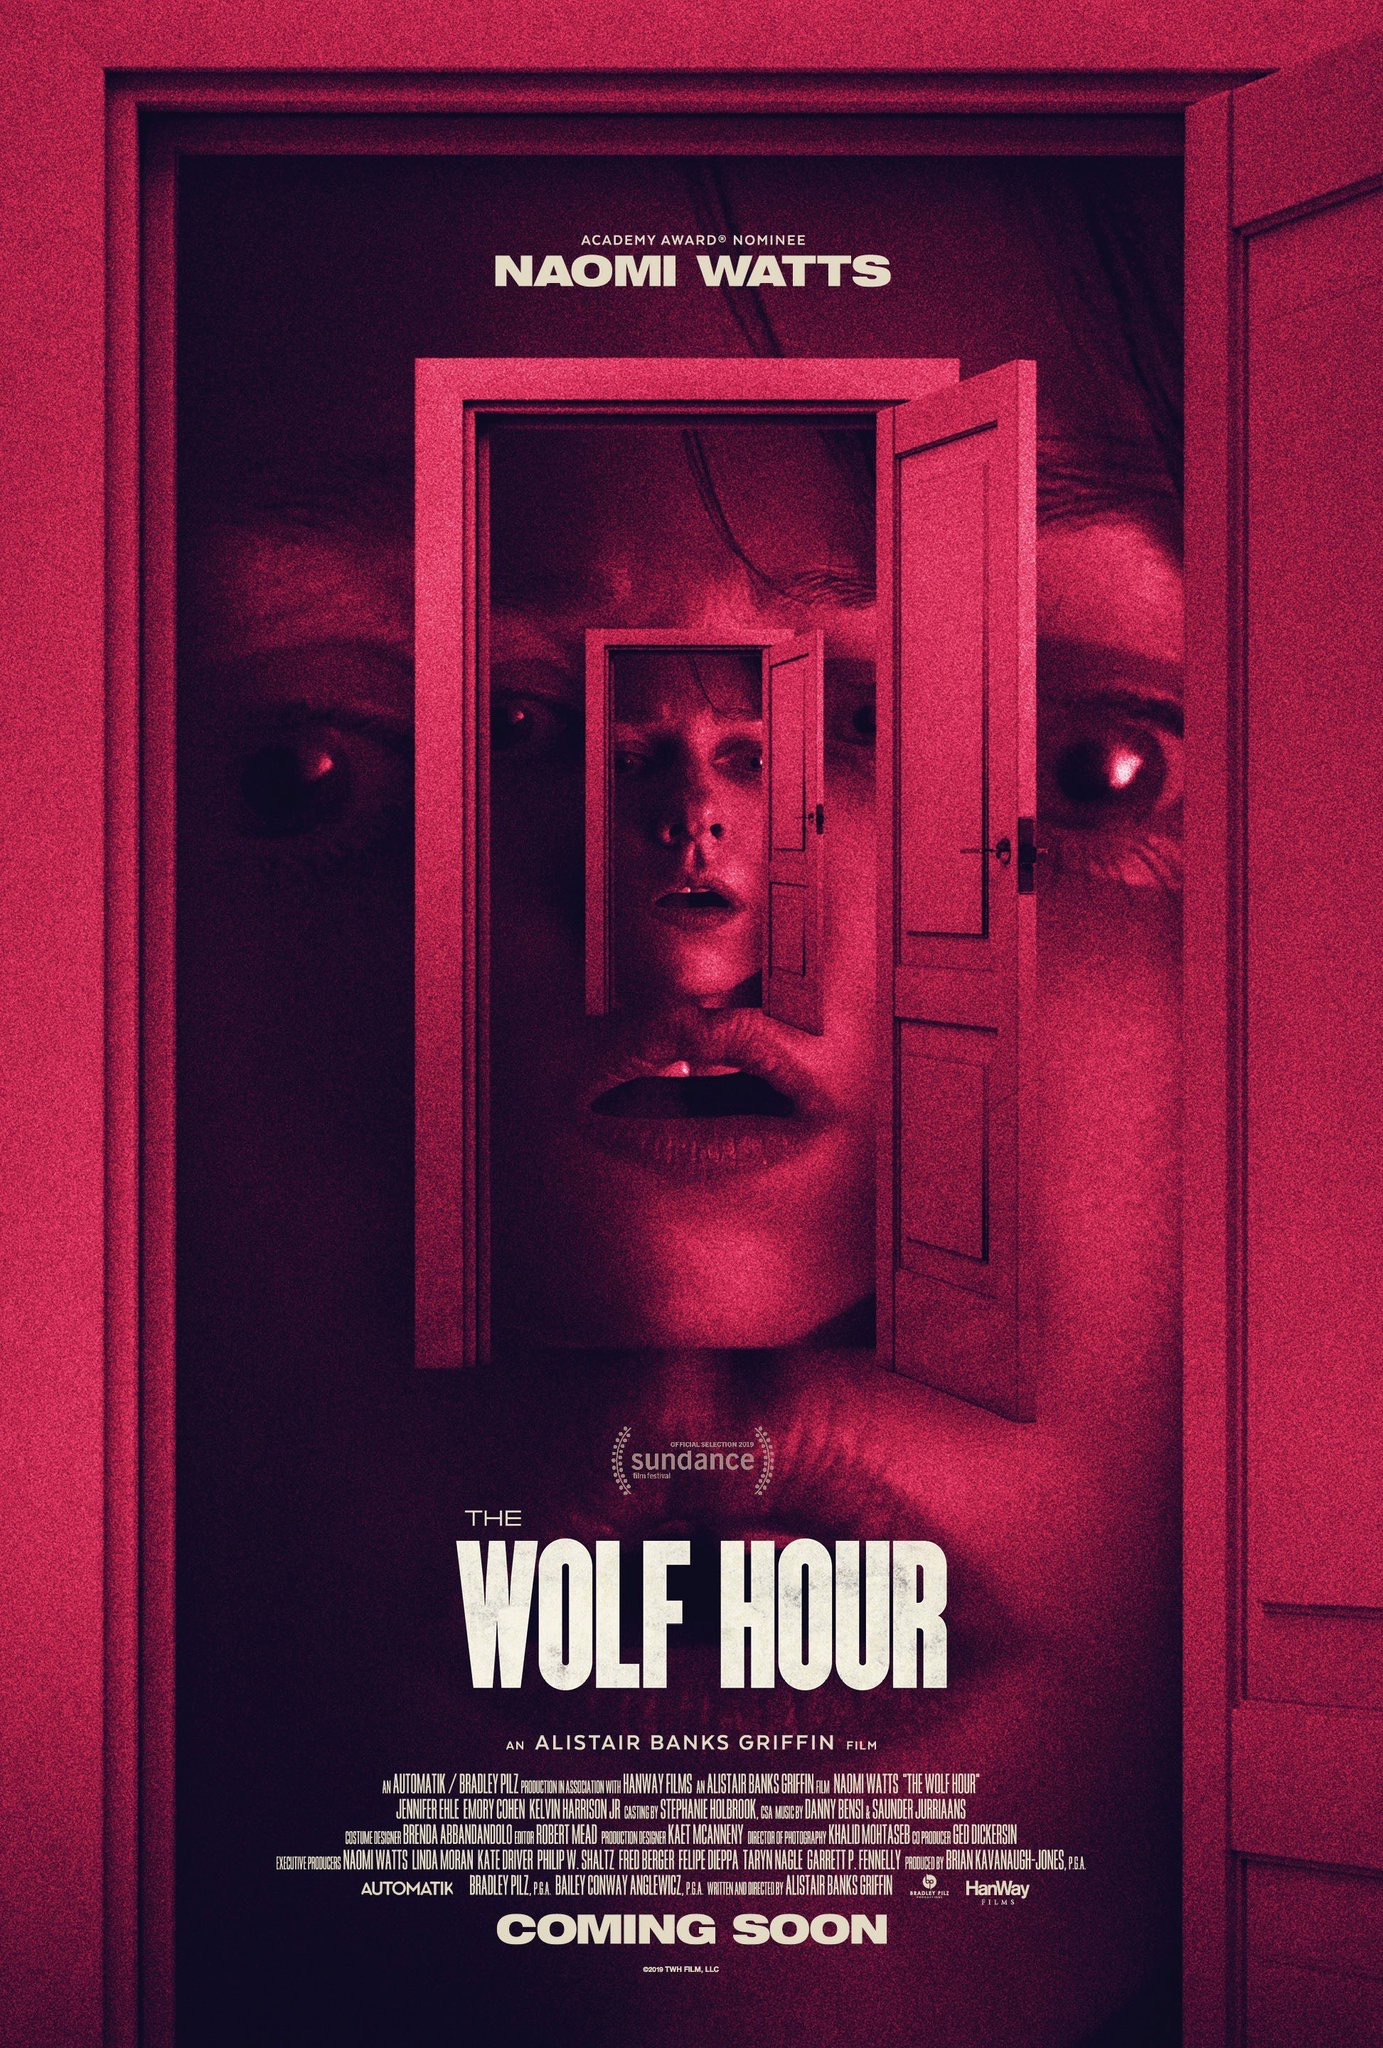 Vilko valanda (2019) / The Wolf Hour